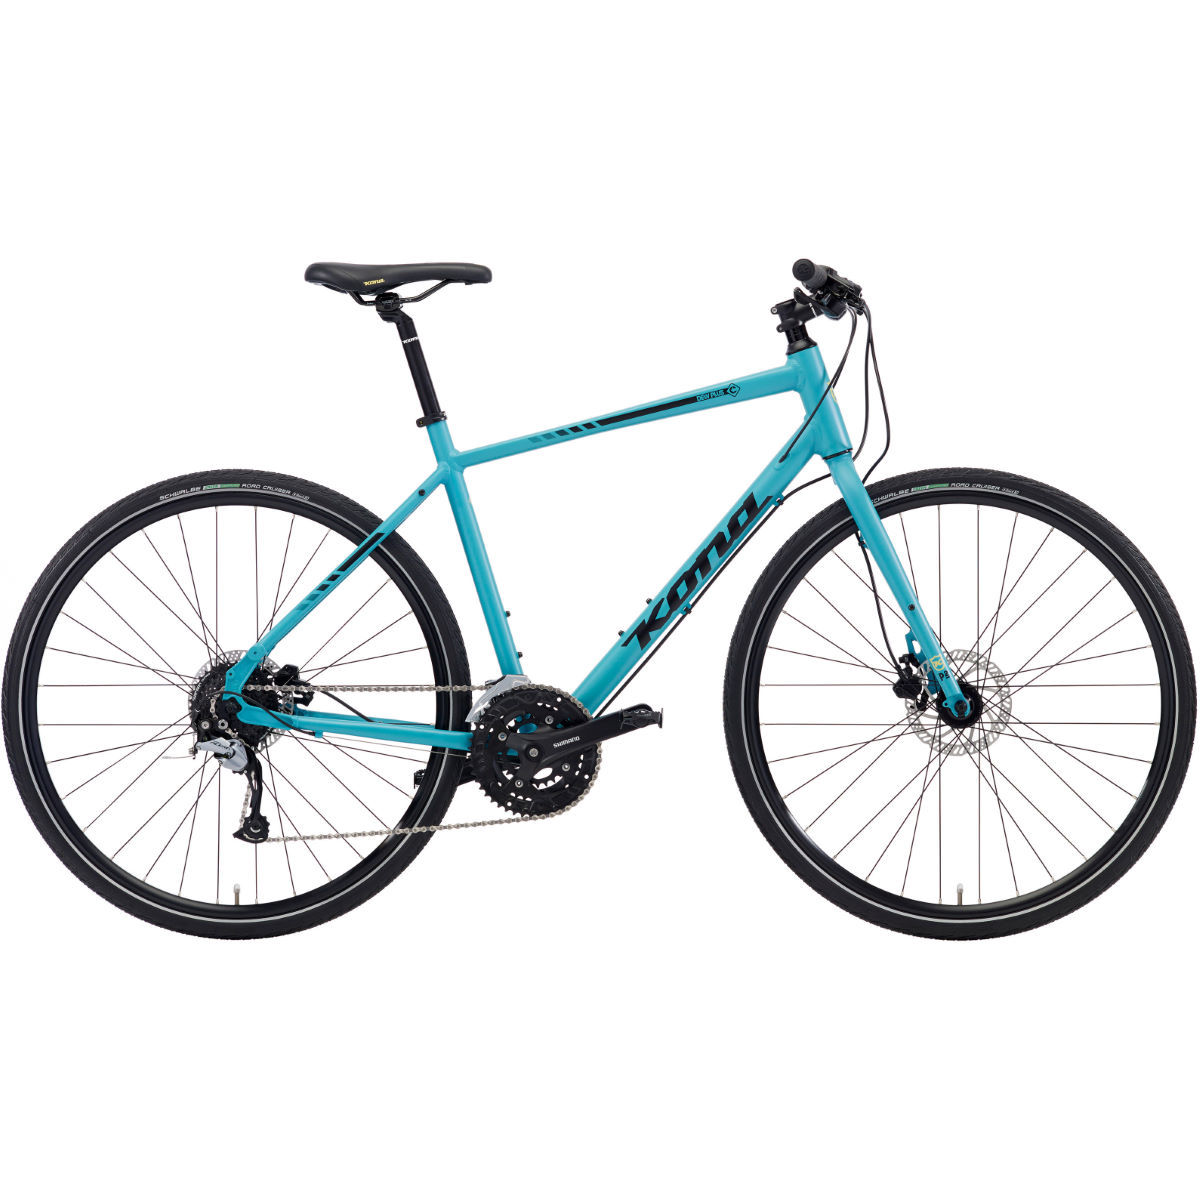 Vélo de route Kona Dew Plus (2018) - 55cm Stock Bike Seafoam